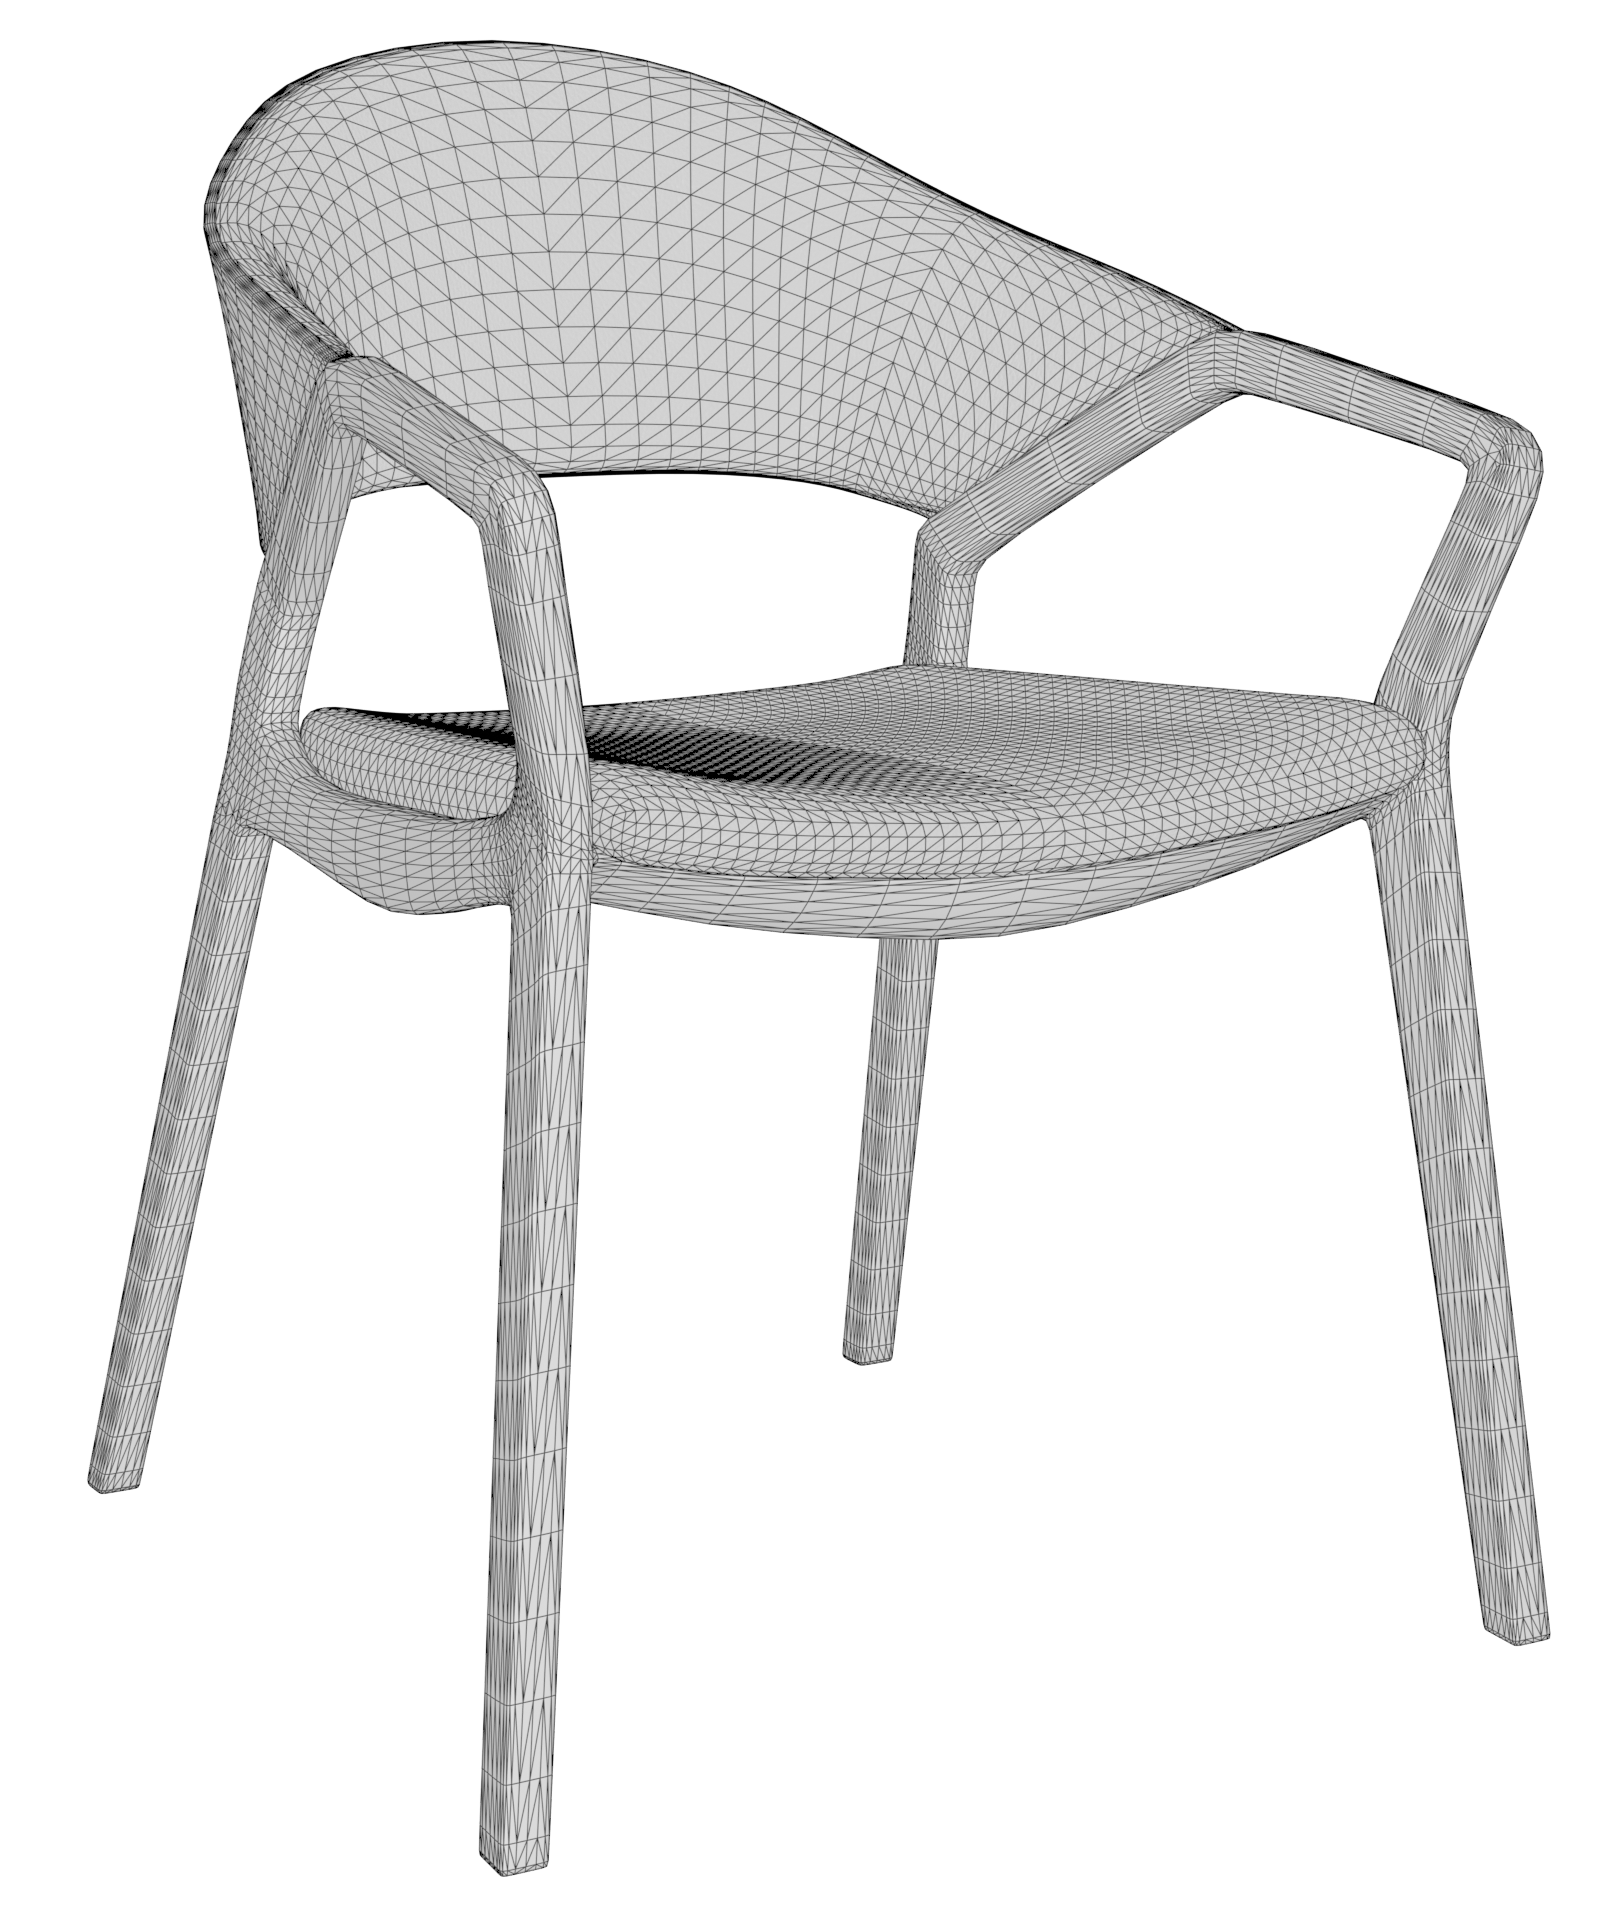 Chair_03_wireframe_02